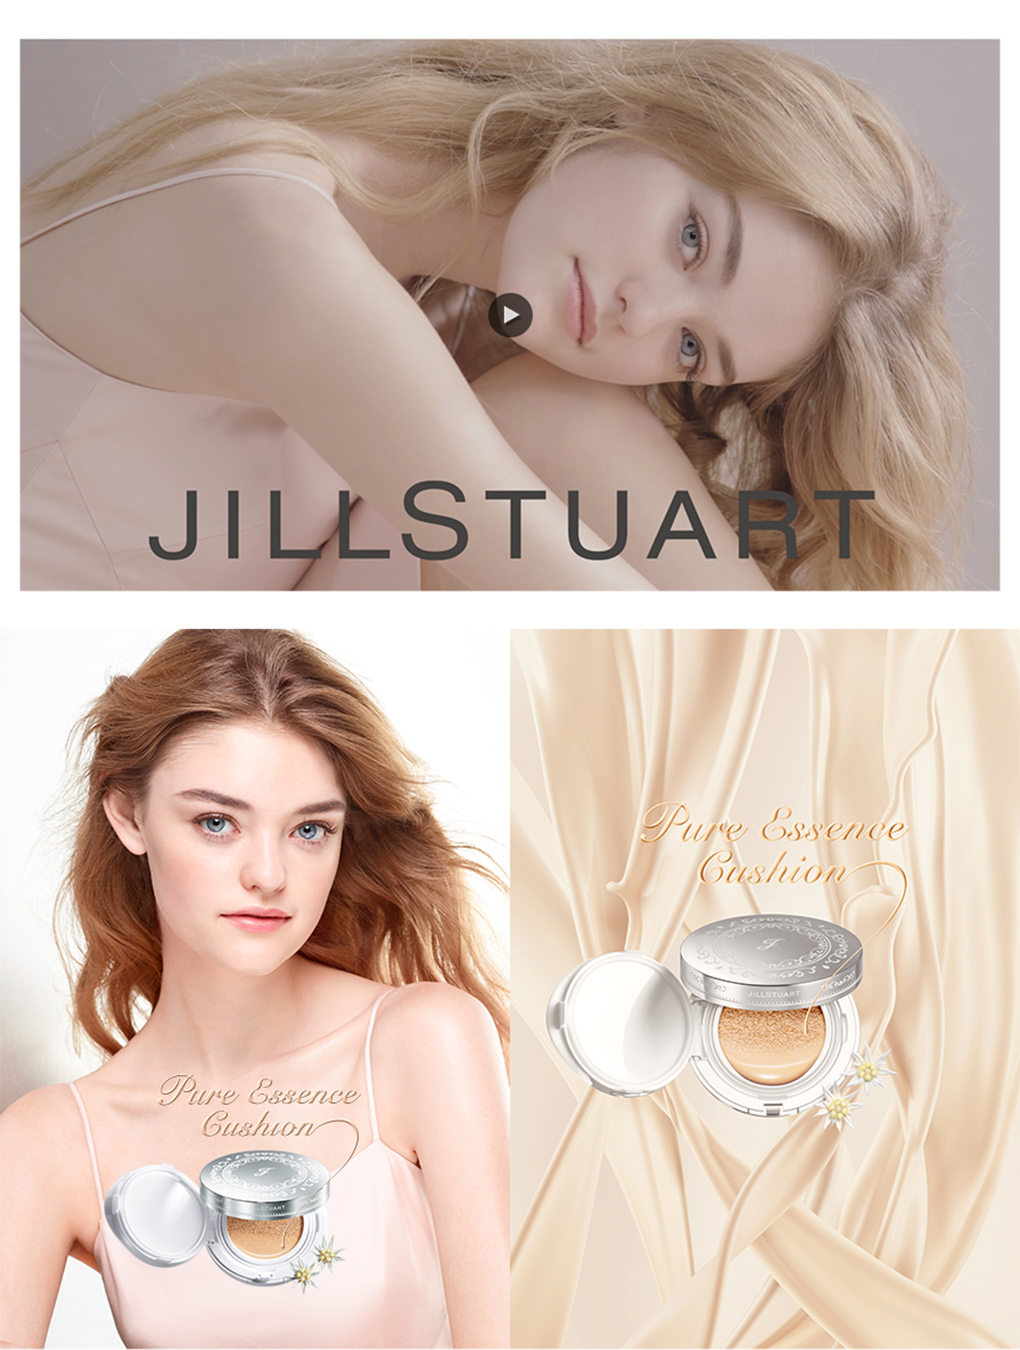 JILL STUART Pure Essence Cushion